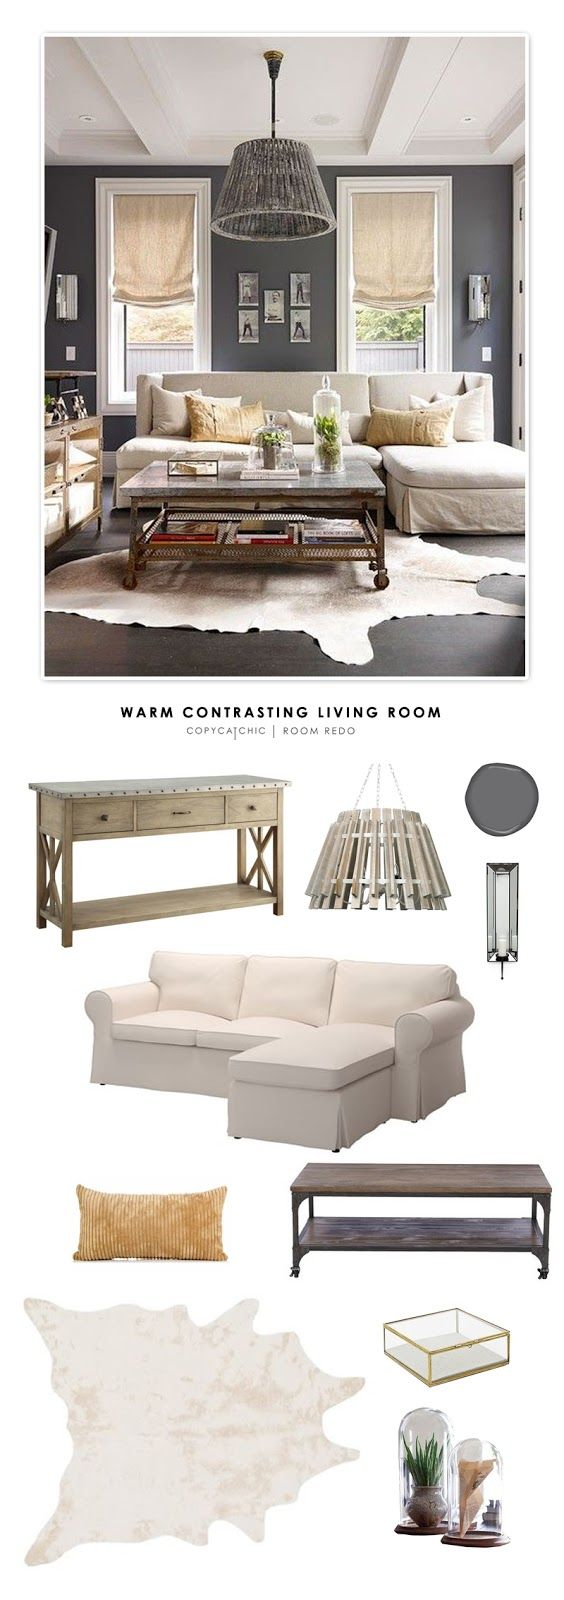 Copy Cat Chic Room Redo | Warm Contrasting Living Room